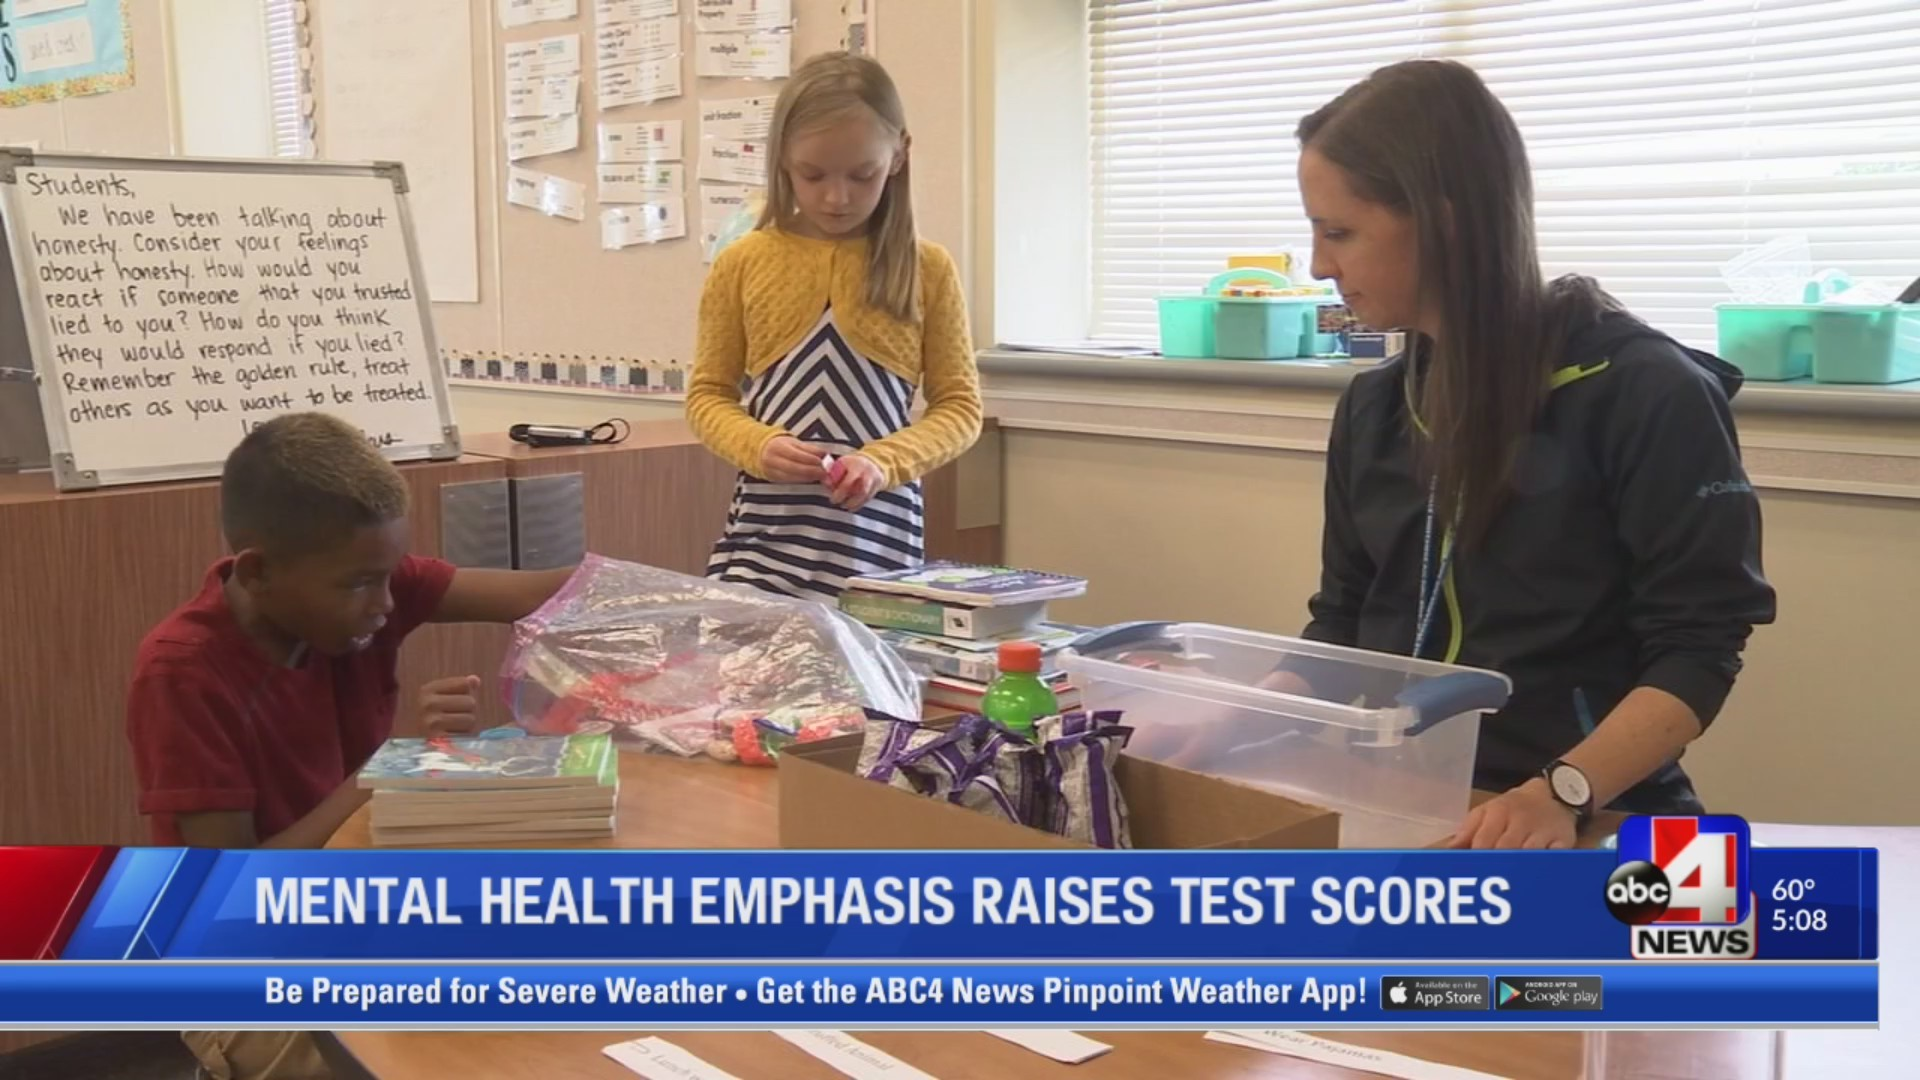 Mental Health emphasis positively effects test scores